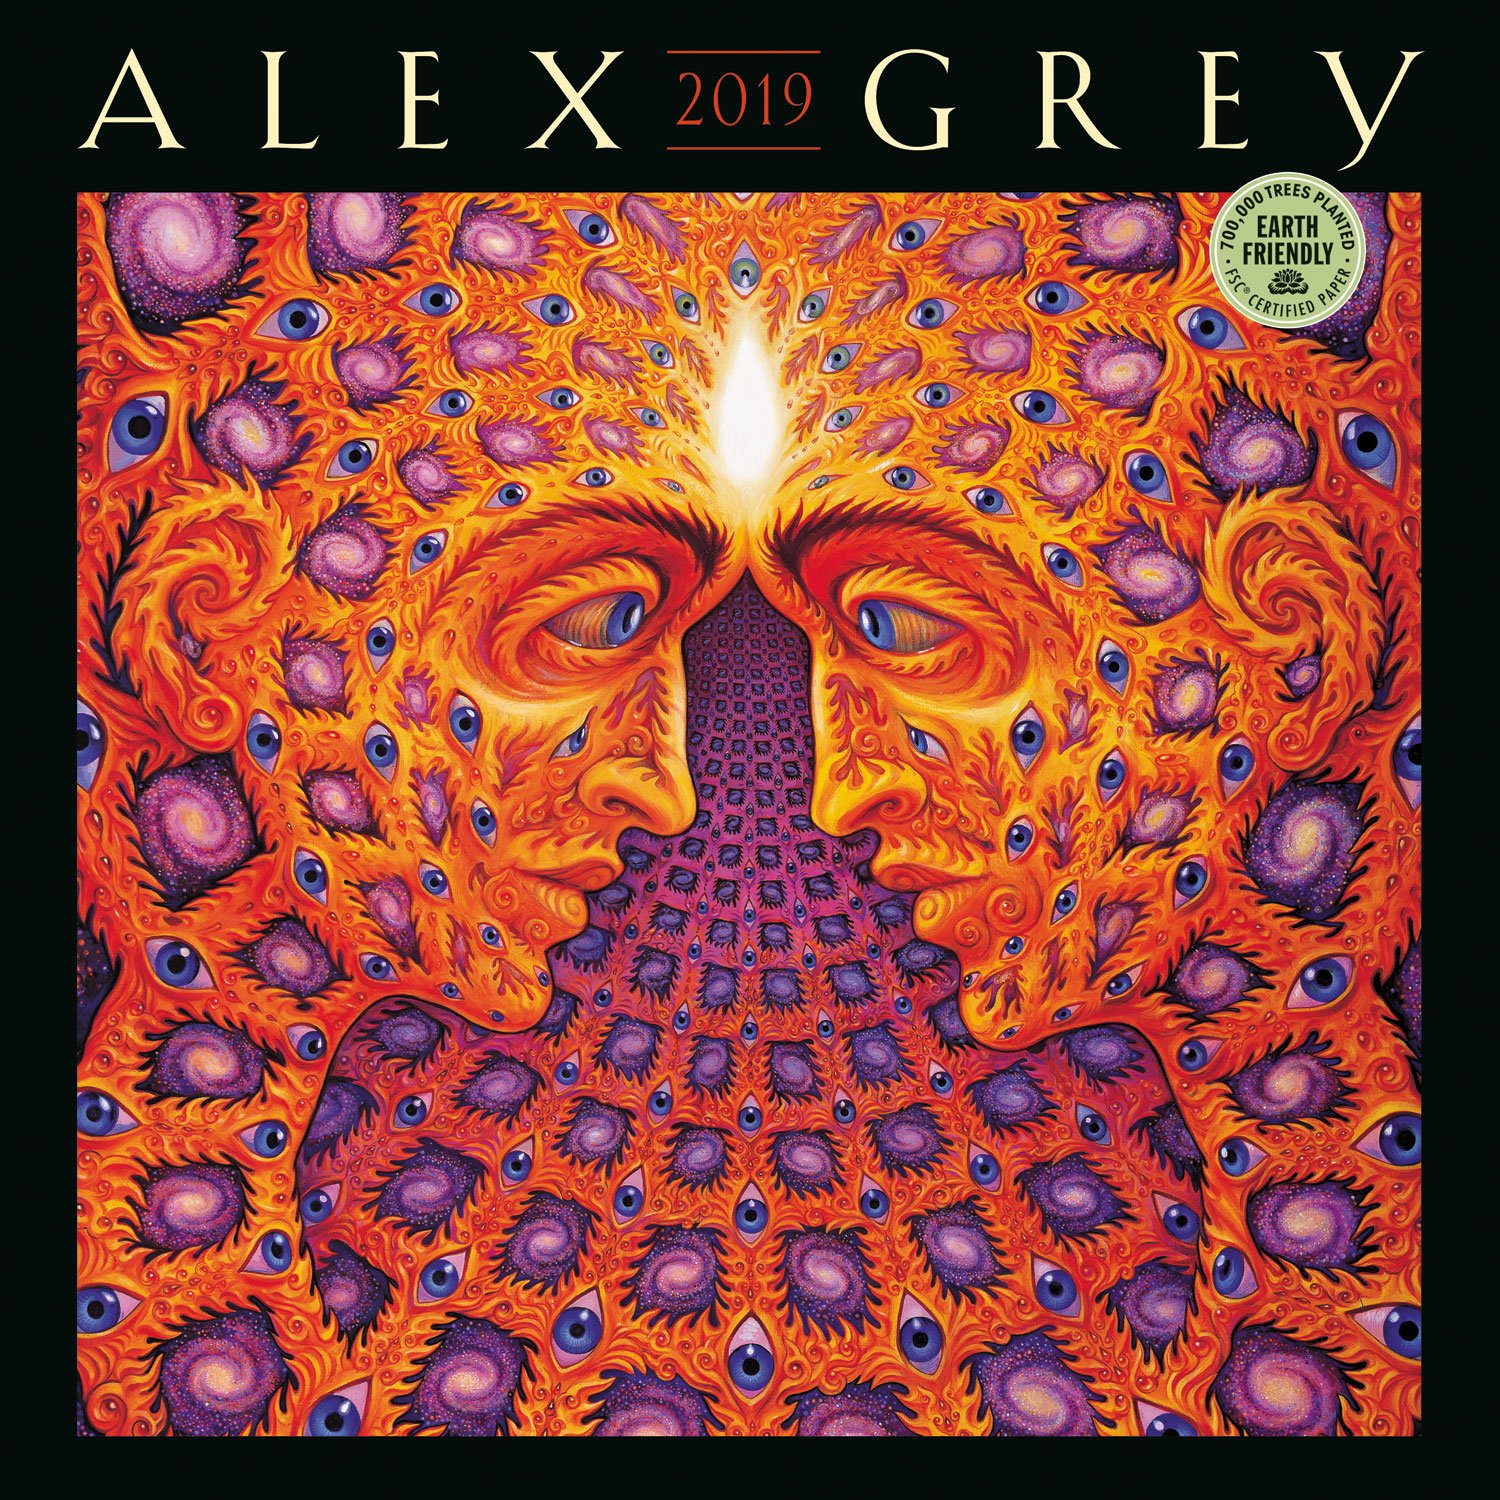 alex grey 2019 wall calendar